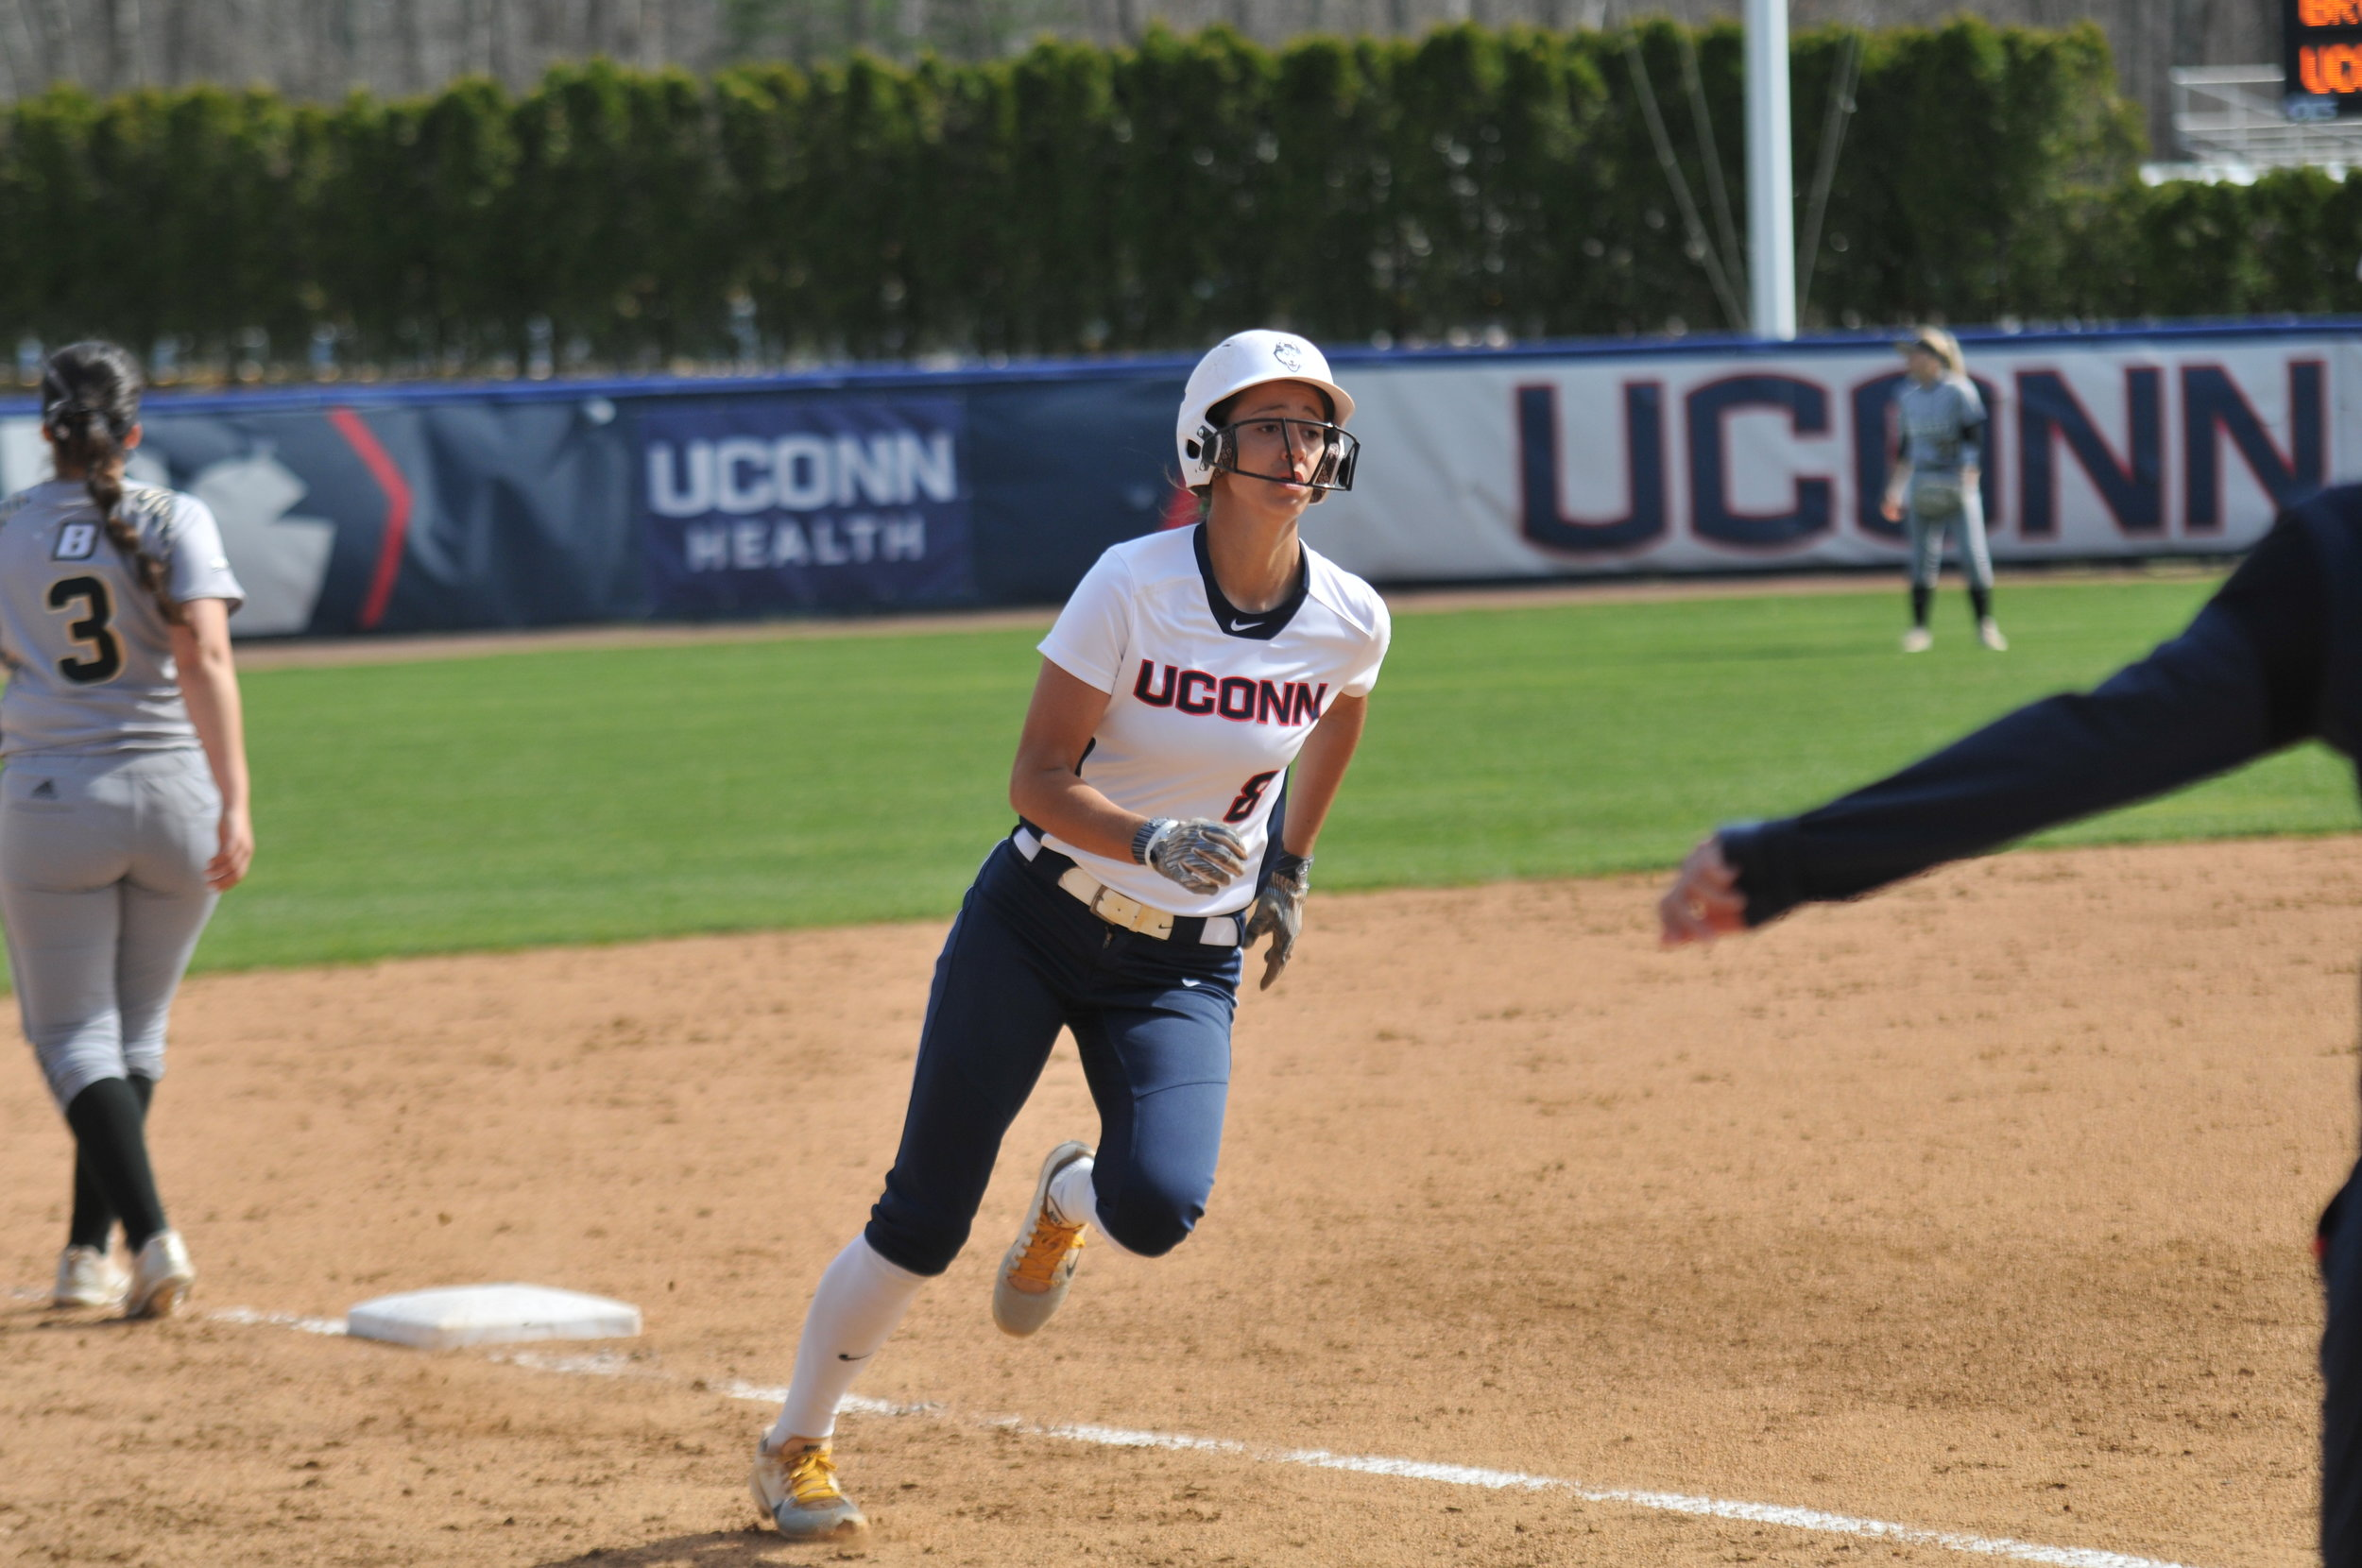 UConn hosts Bryant University for their mid-week game at the Burrill Family Field on Tuesday, Apr. 24. The Huskies cruised to a 4-1 win over the Bulldogs, leading to their second mid-week victory. (photo by Jon Sammis/The Daily Campus)